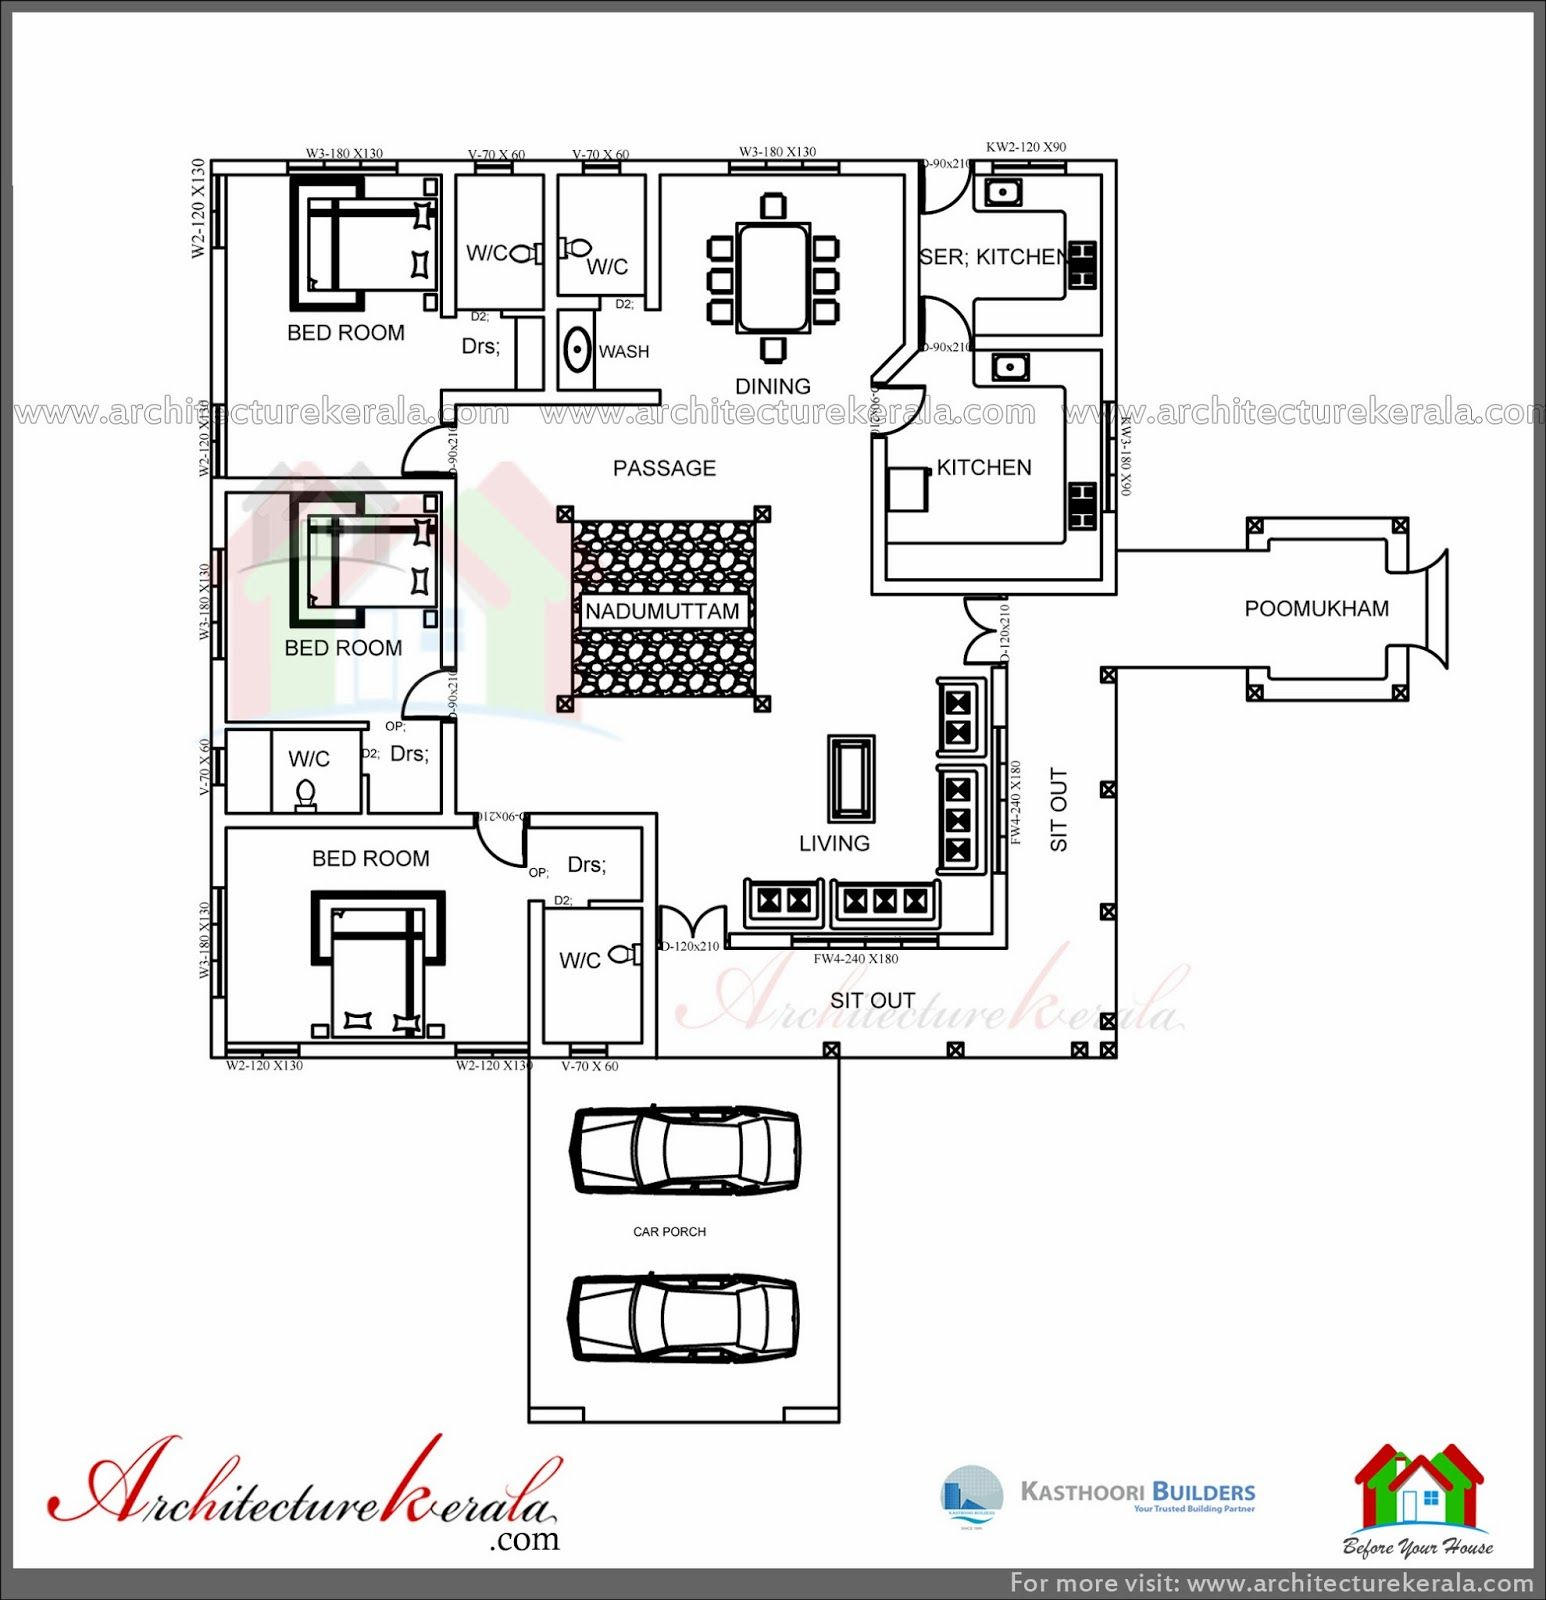 Architecture kerala traditional house plan with Buy architectural plans